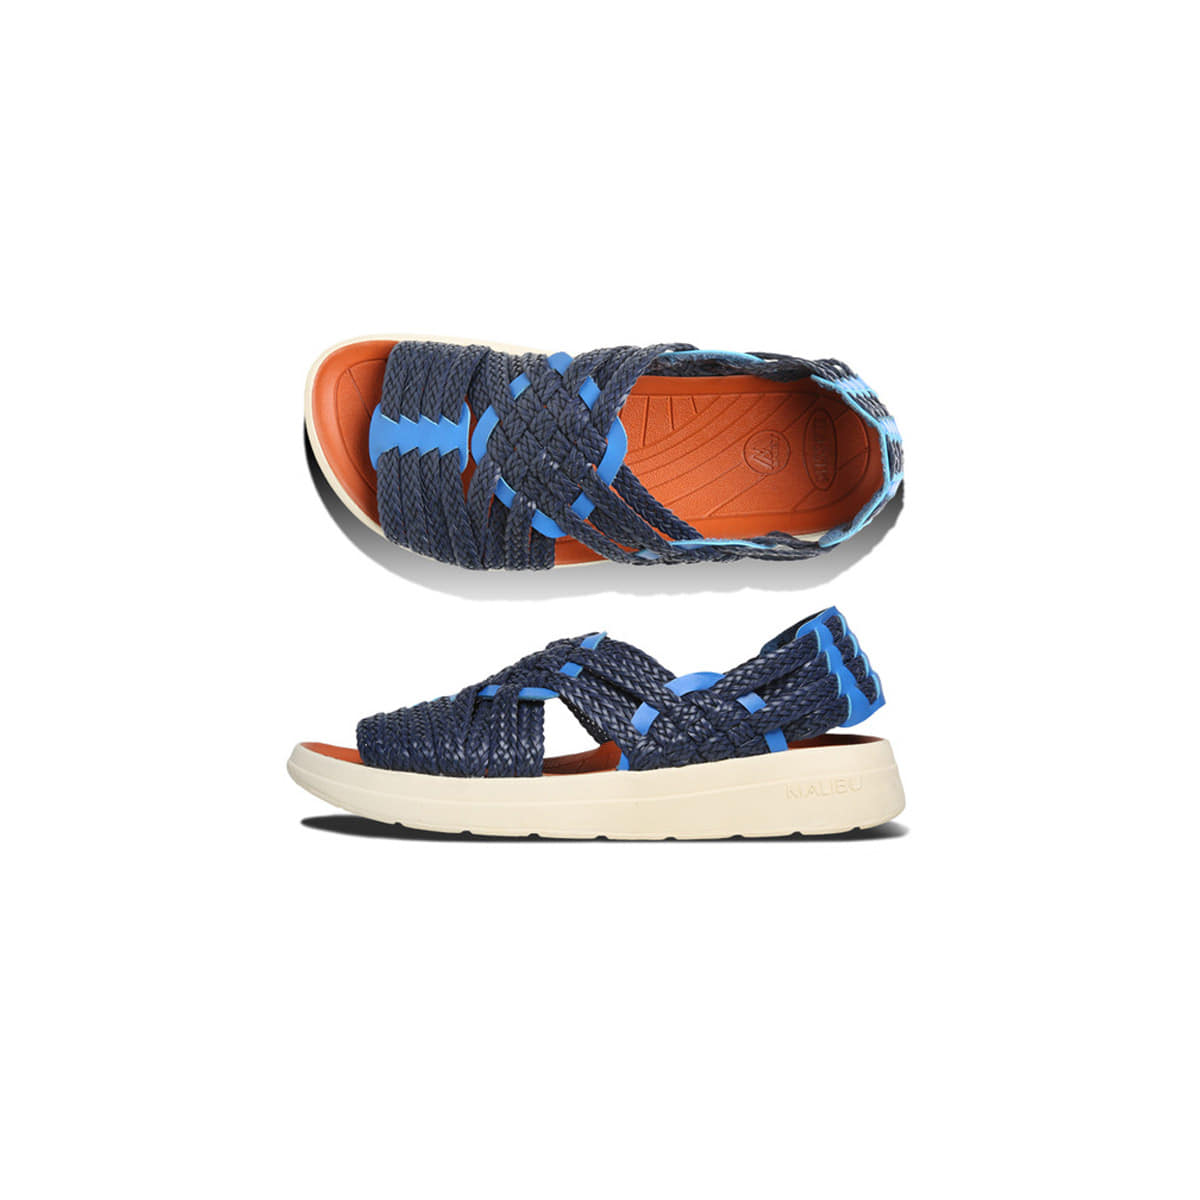 [MALIBU SANDALS] MISSONI x MALIBU CANYON 'NAVY COBALT'